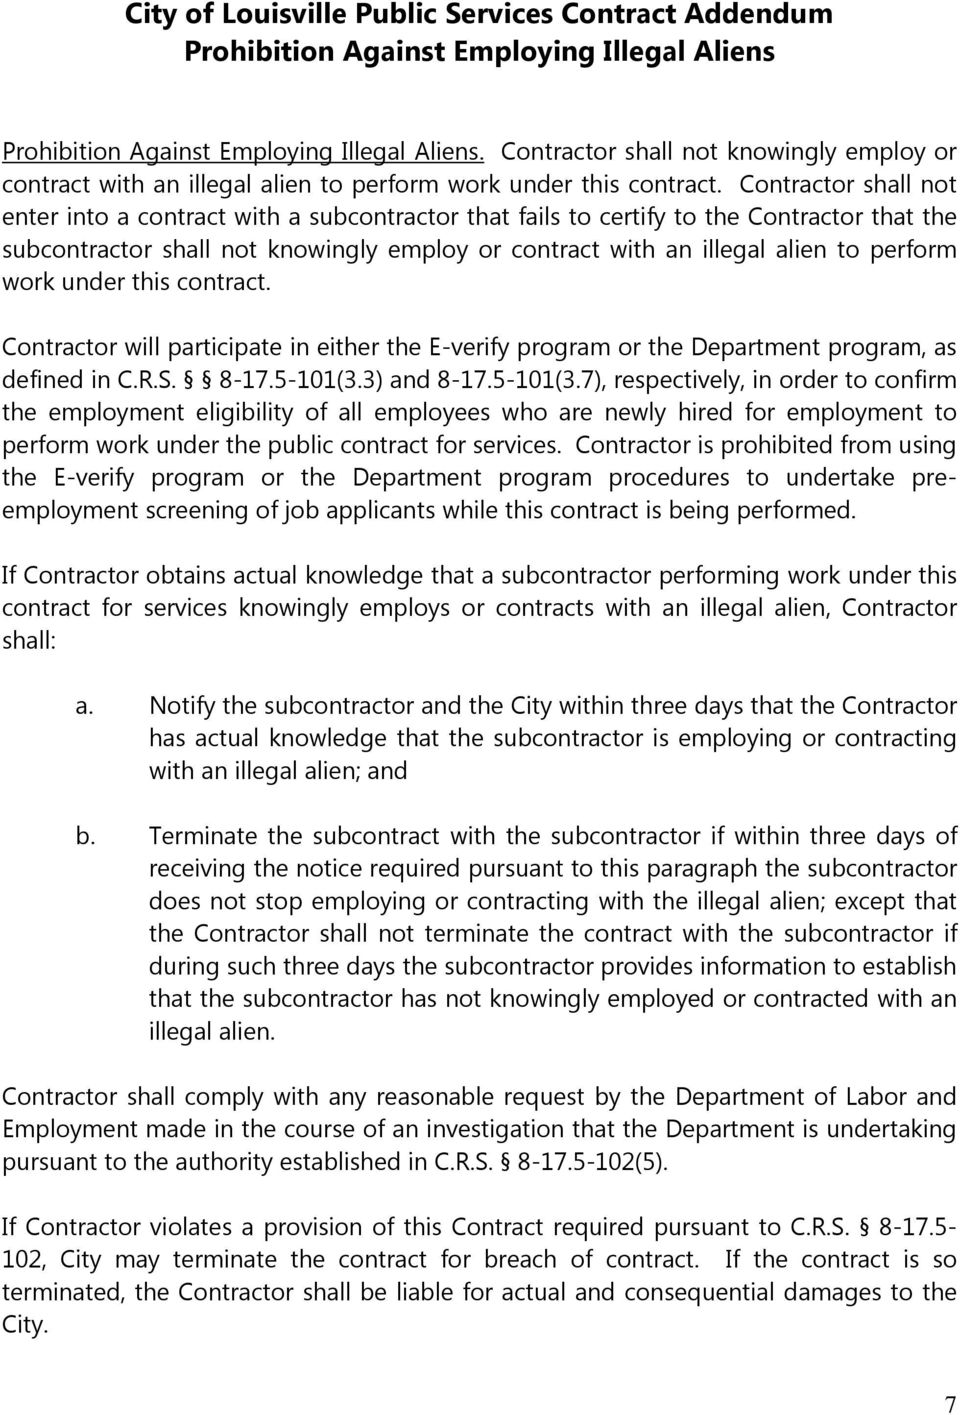 Contractor shall not enter into a contract with a subcontractor that fails to certify to the Contractor that the subcontractor shall not knowingly employ or contract with an illegal alien to perform